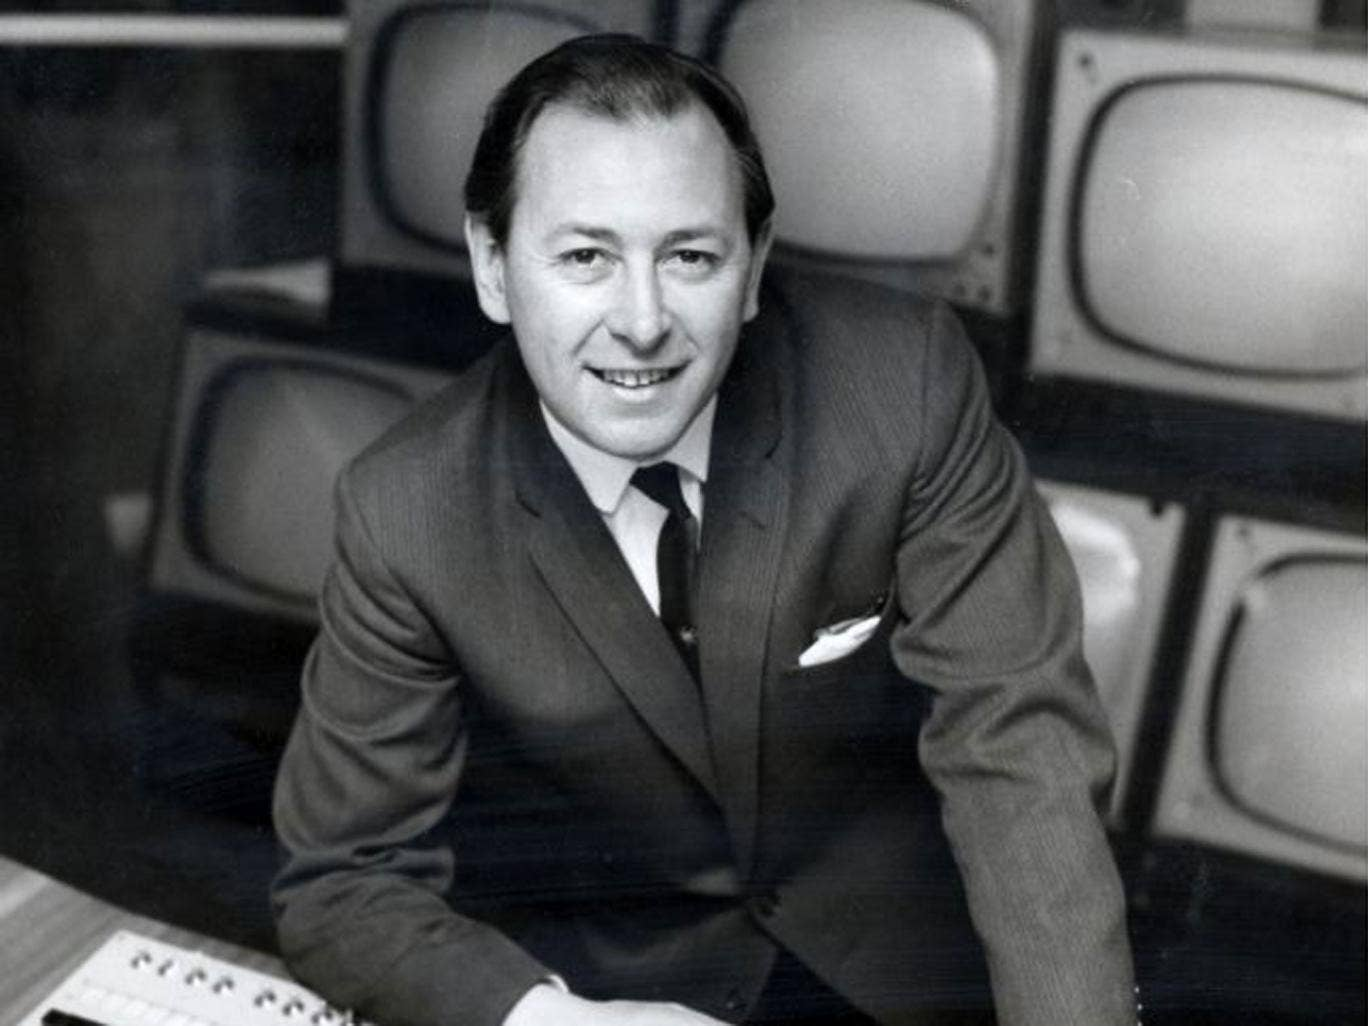 Many of the tributes focused on people's fondness for the unique timbre of David Coleman's voice